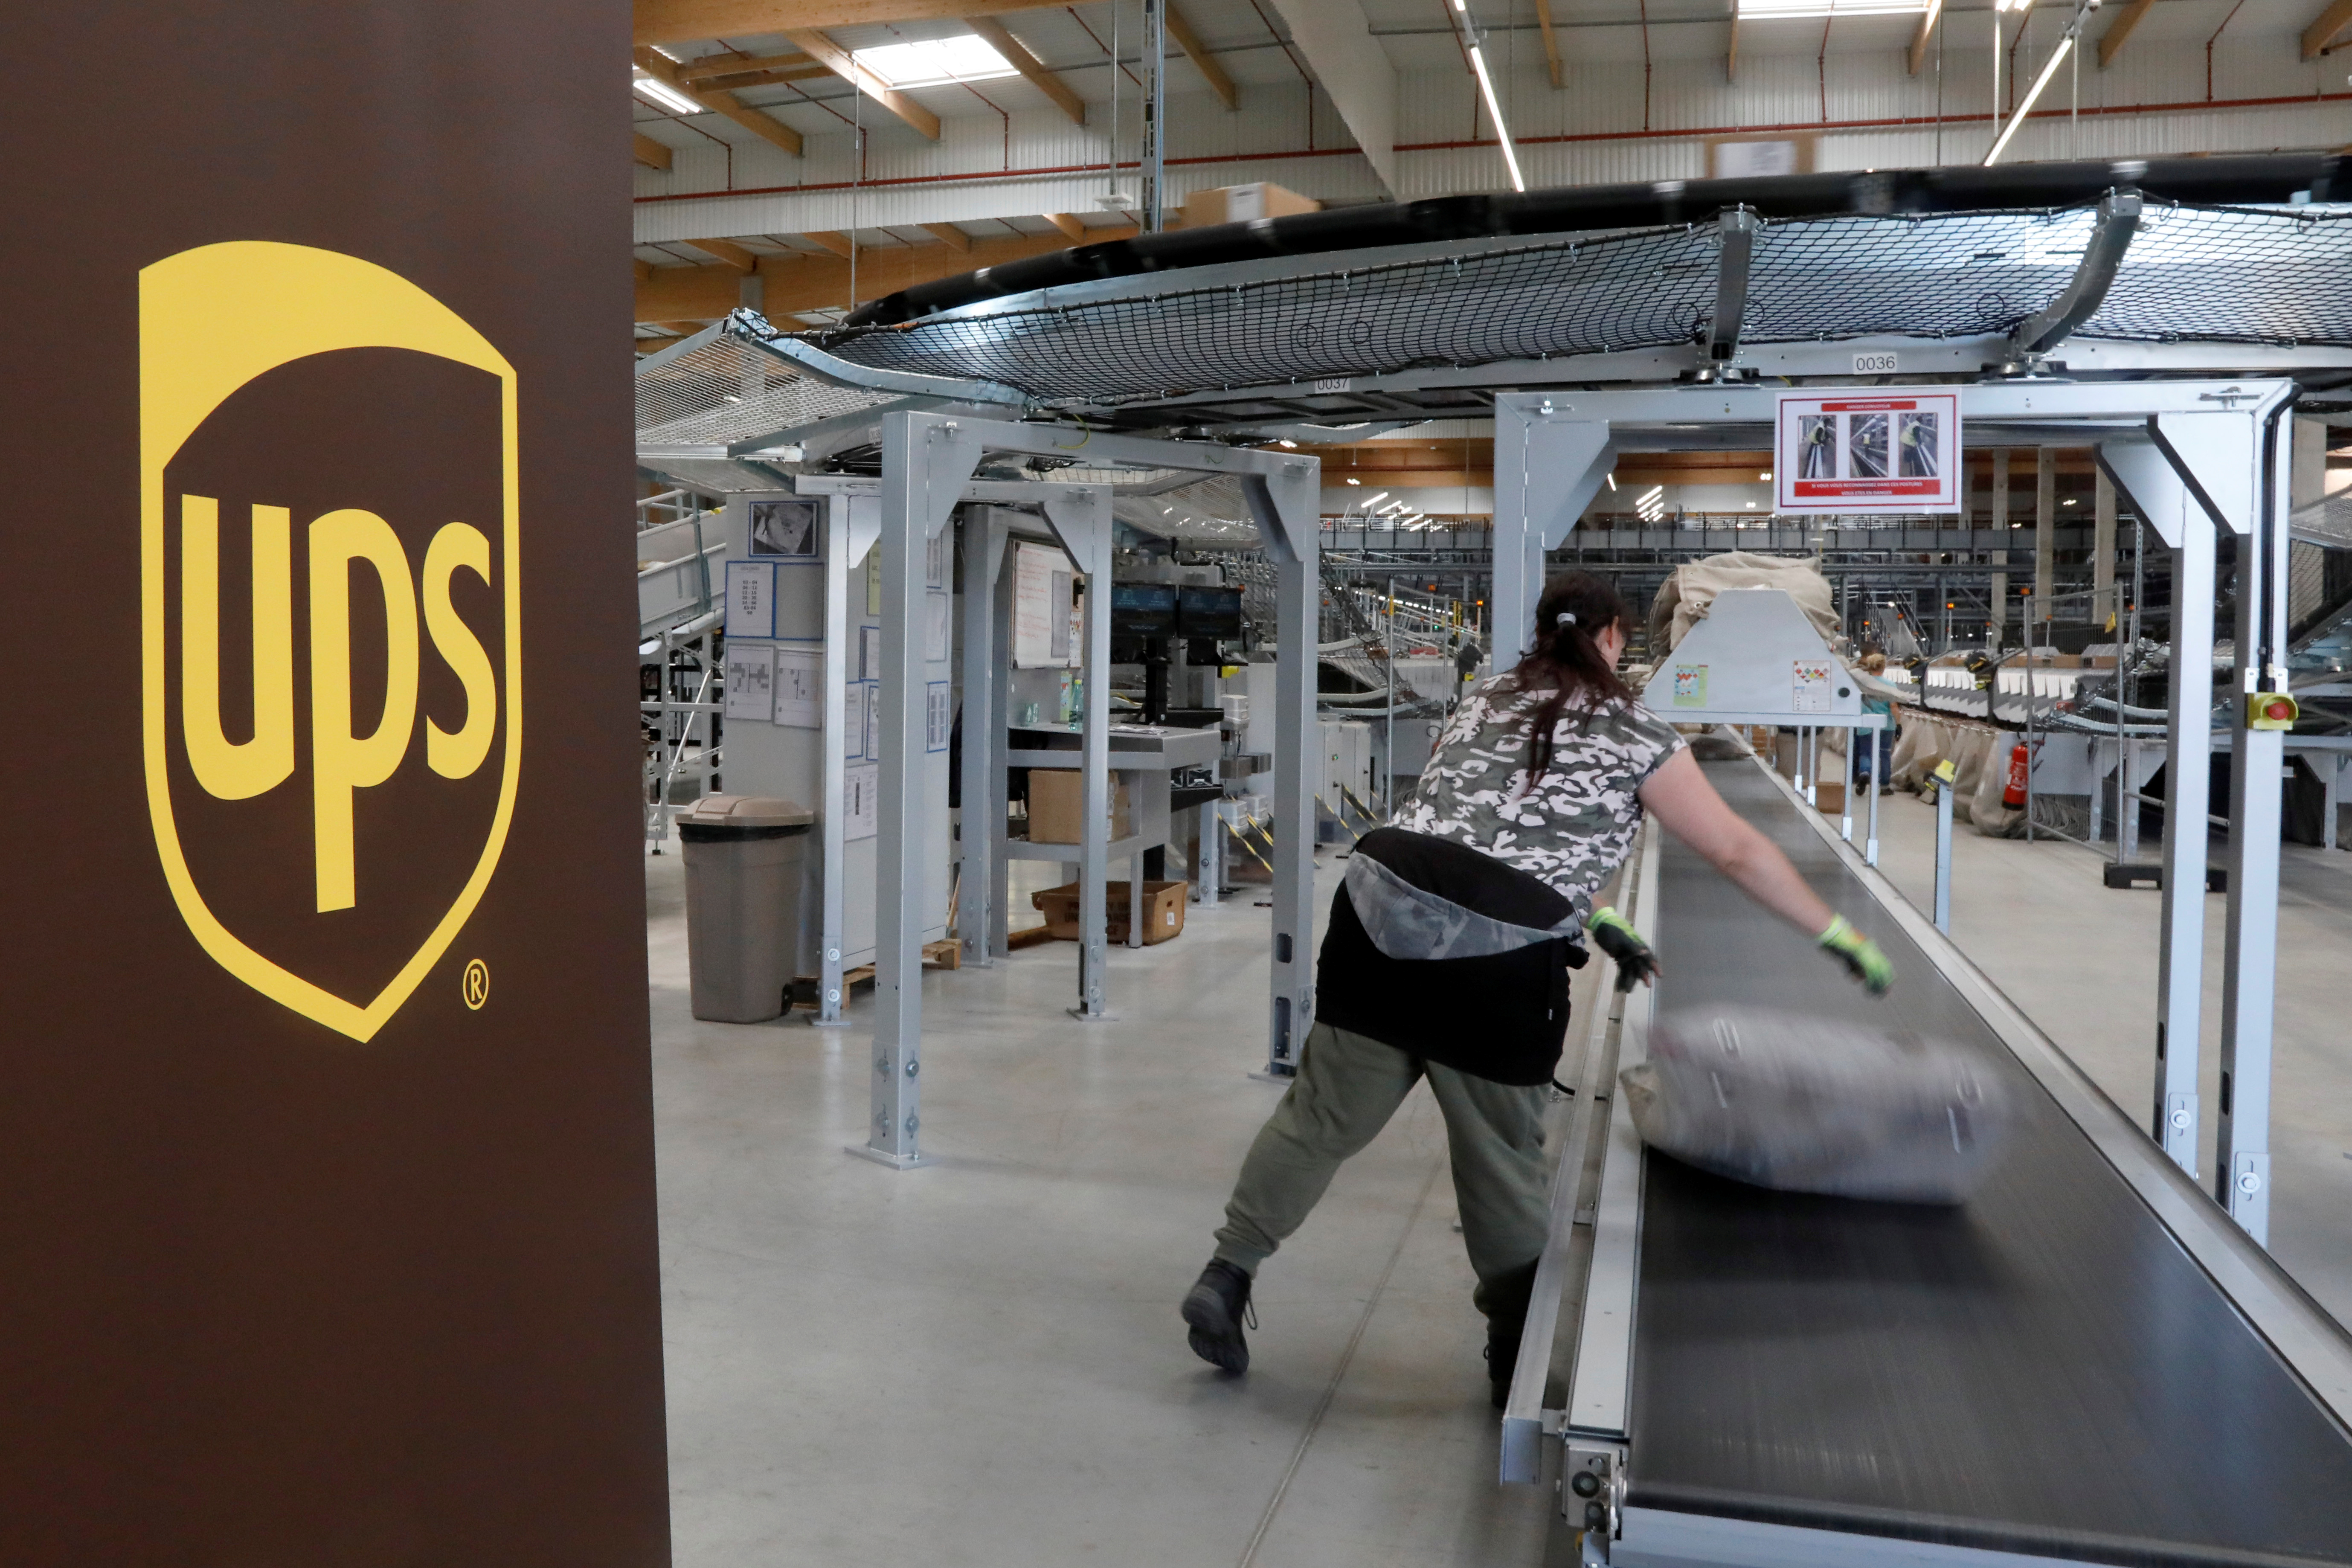 An United Parcel Service employee works at the new package sorting and delivery UPS hub in Corbeil-Essonnes and Evry, southern Paris, France, June 26, 2018.  REUTERS/Charles Platiau